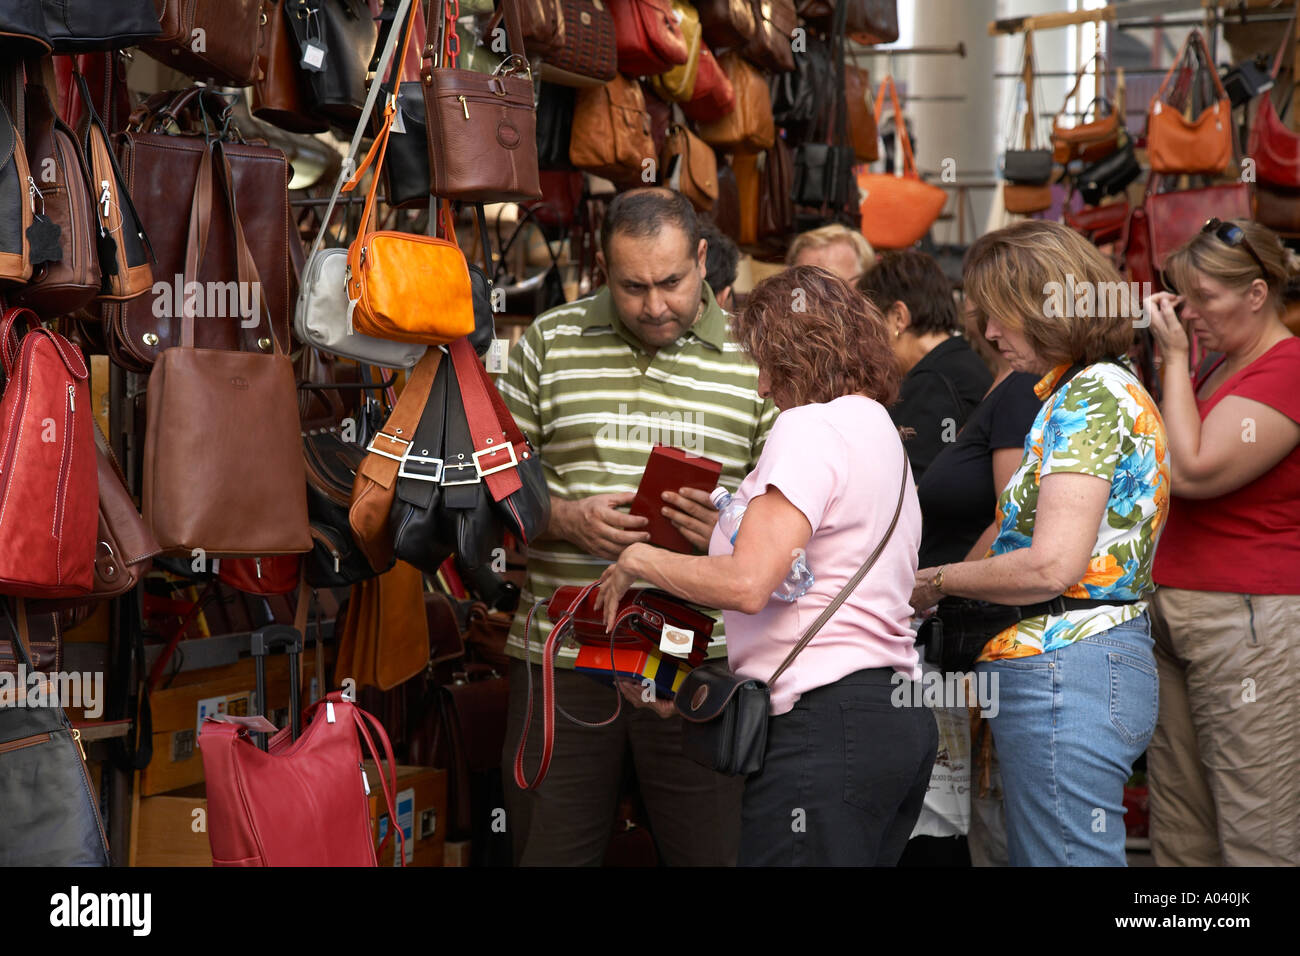 salesman-and-customers-at-handbag-display-in-outdoor-market-firenze-A040JK.jpg